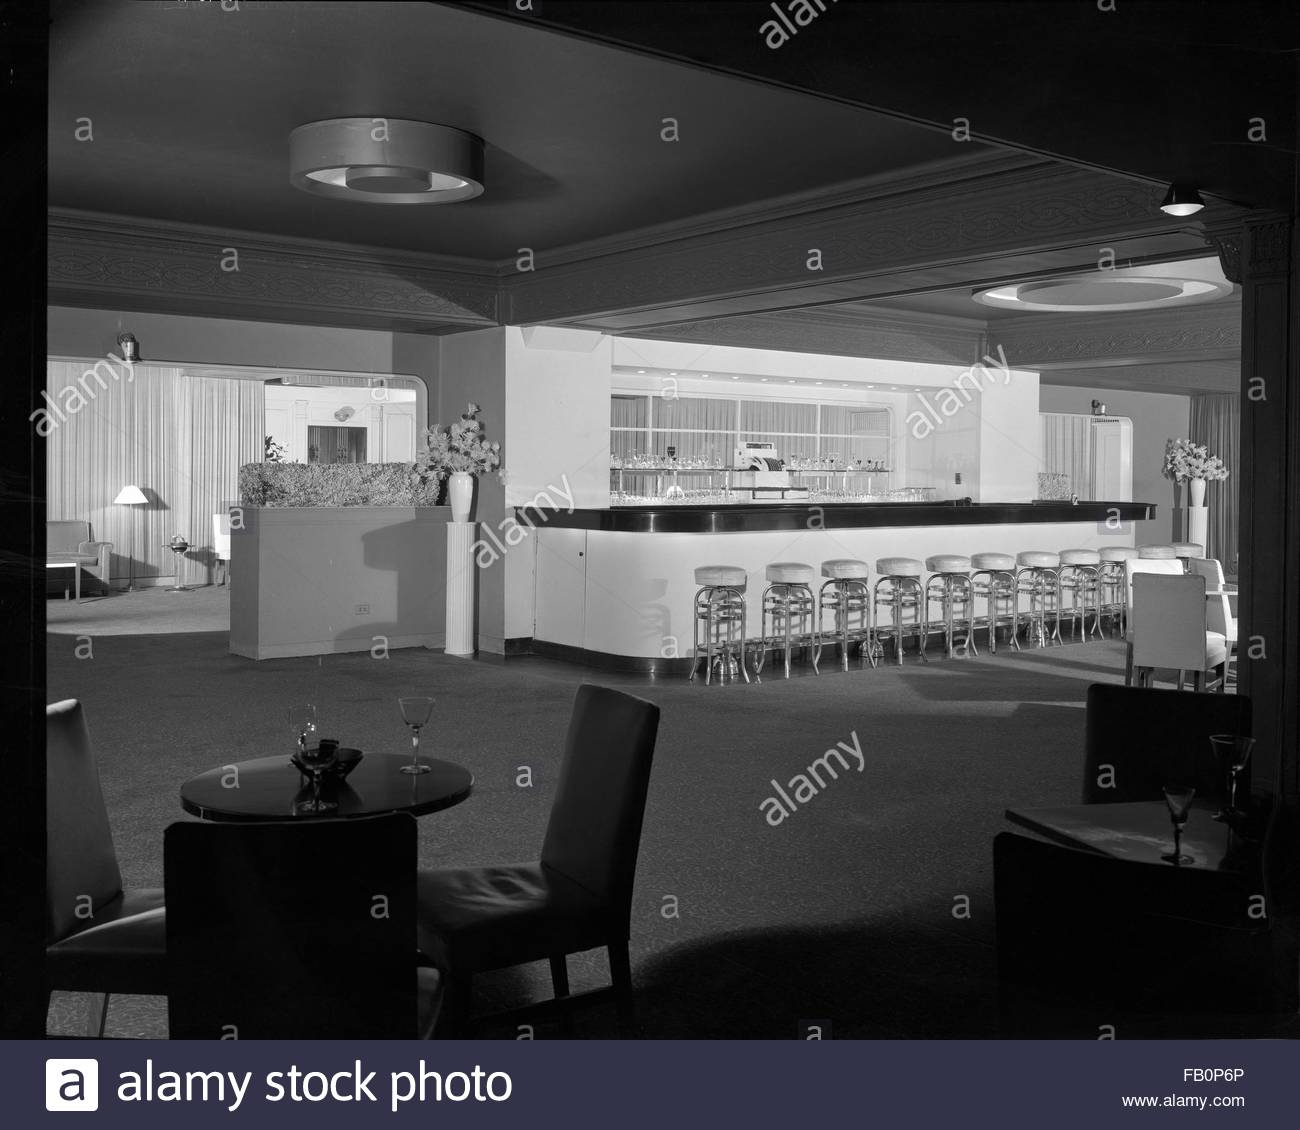 Stevens Hotel in Chicago (Ill.), 1936 Feb. 18. Interior, restaurant dining room and bar with stools around it. - Stock Image